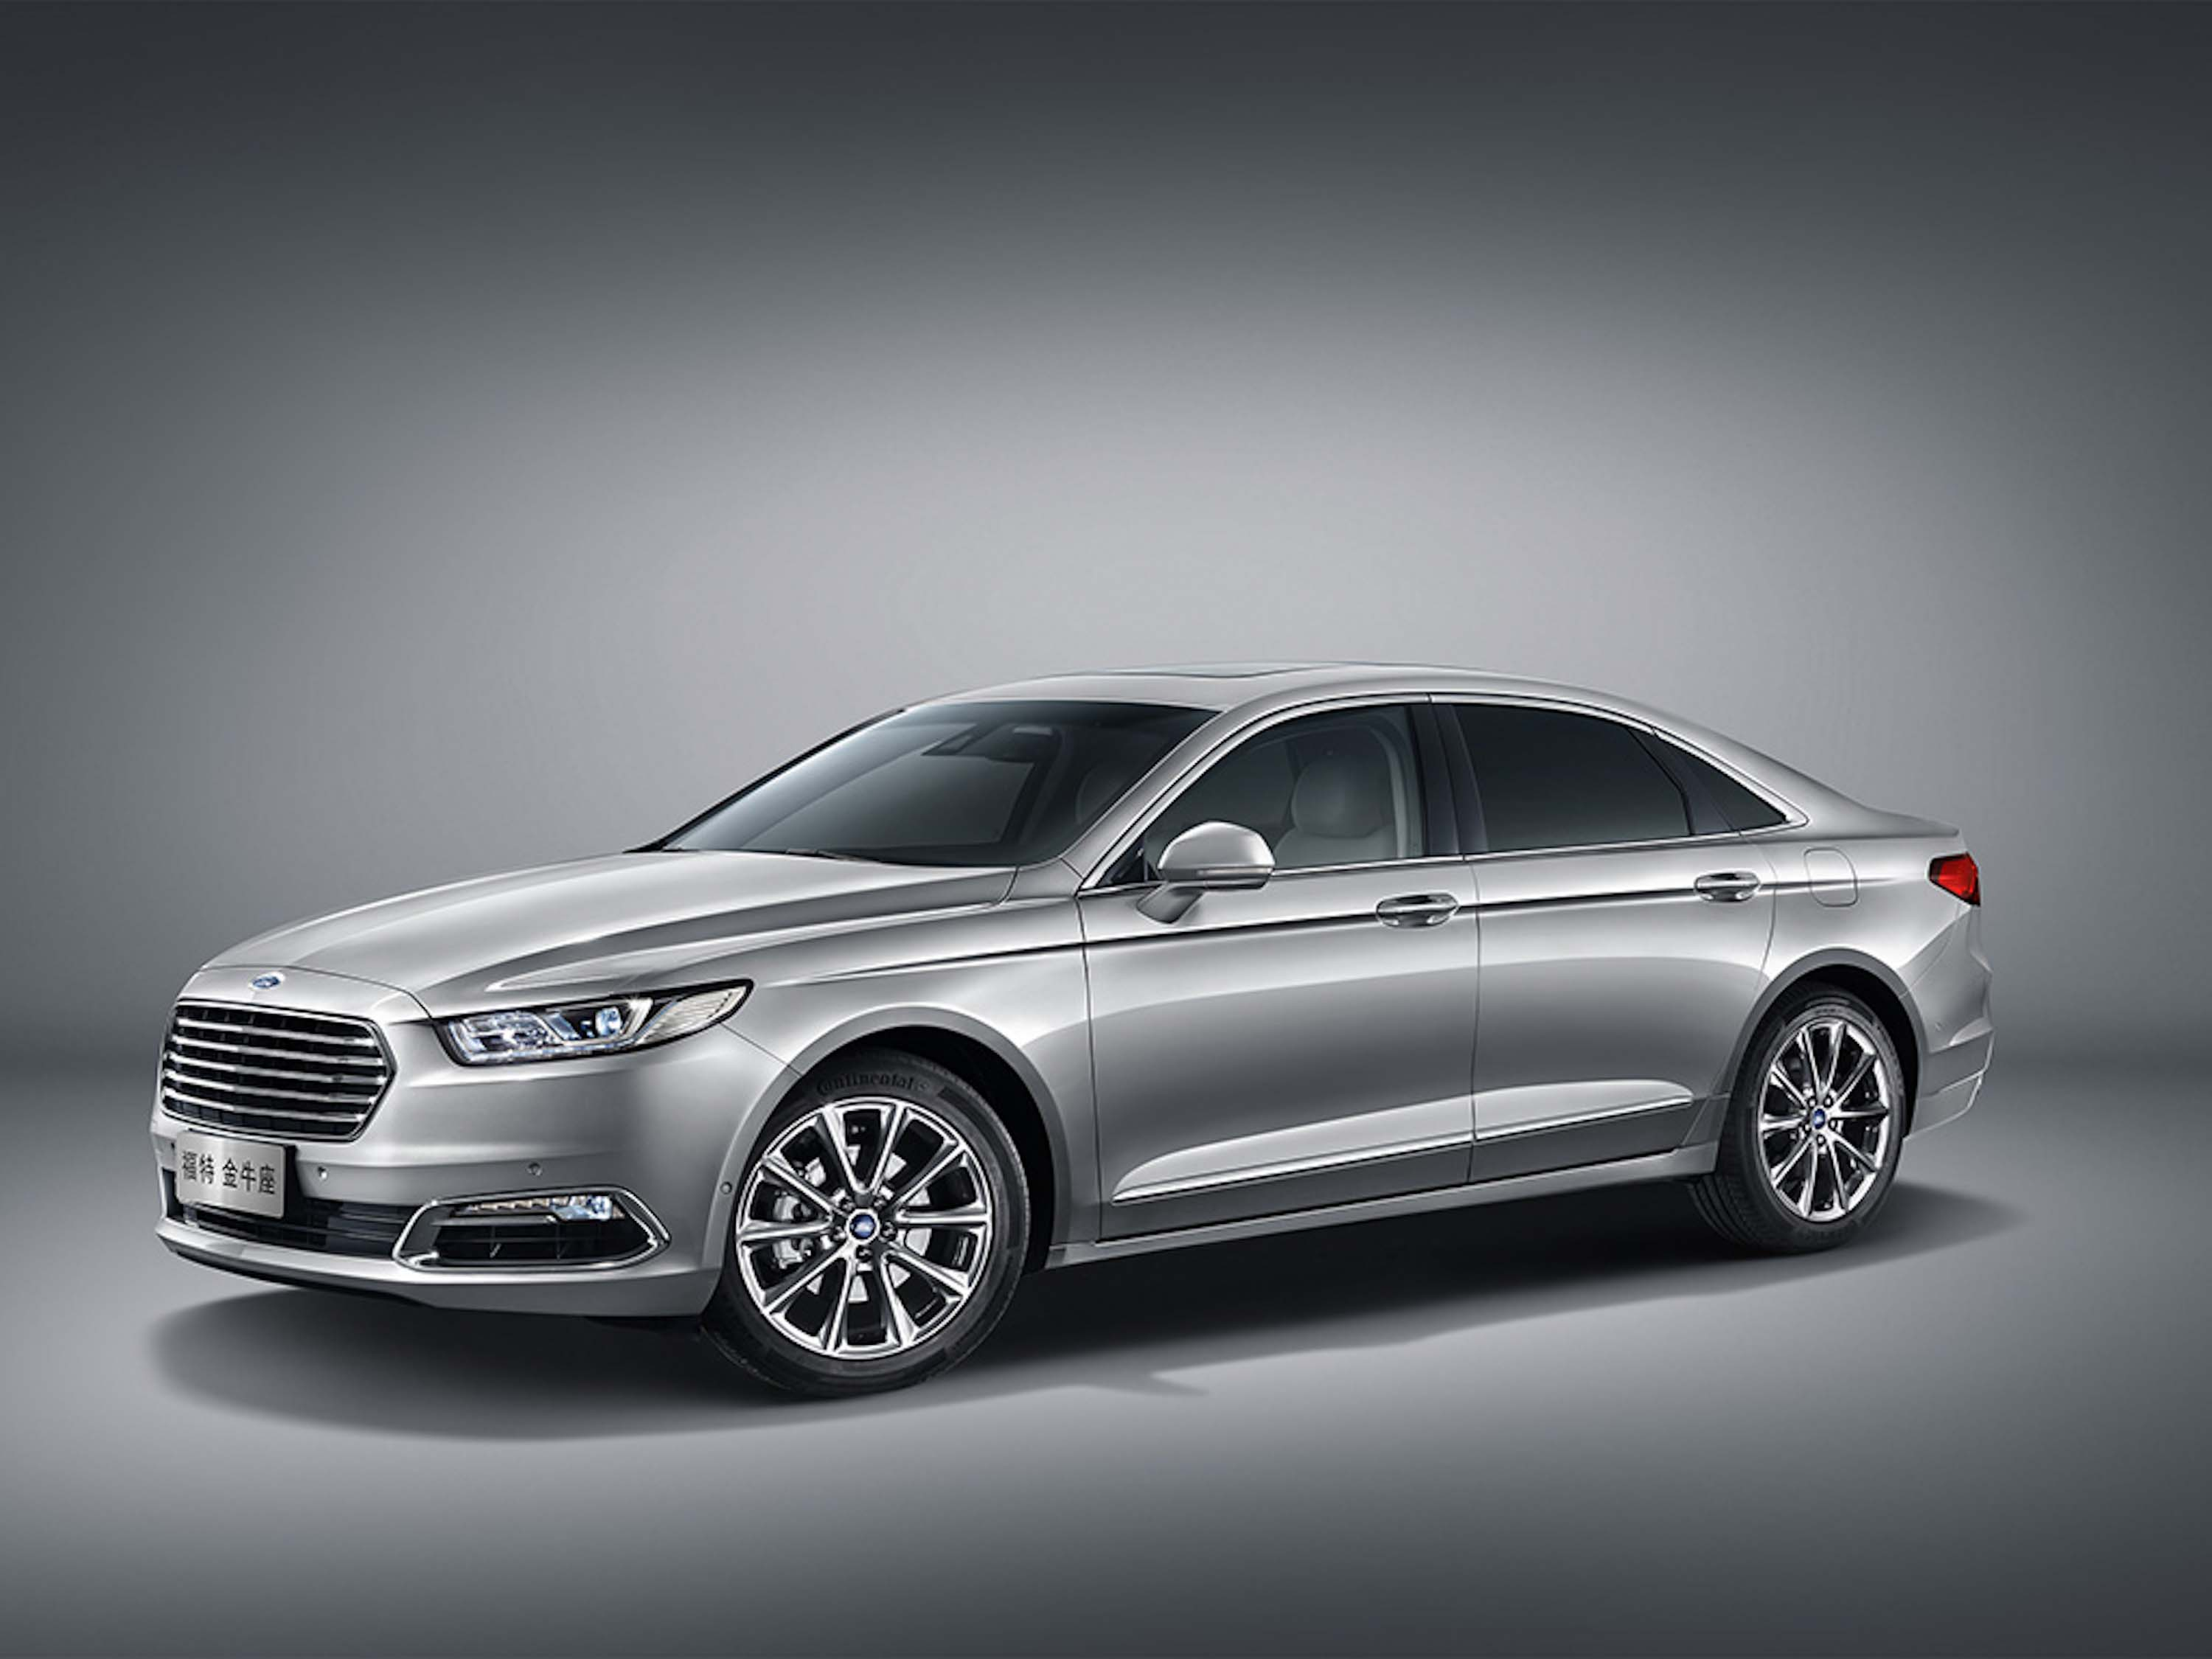 enhanced gets new so ford sho news performance taurus sportiest and the inspired bigger is far design brakes dynamics